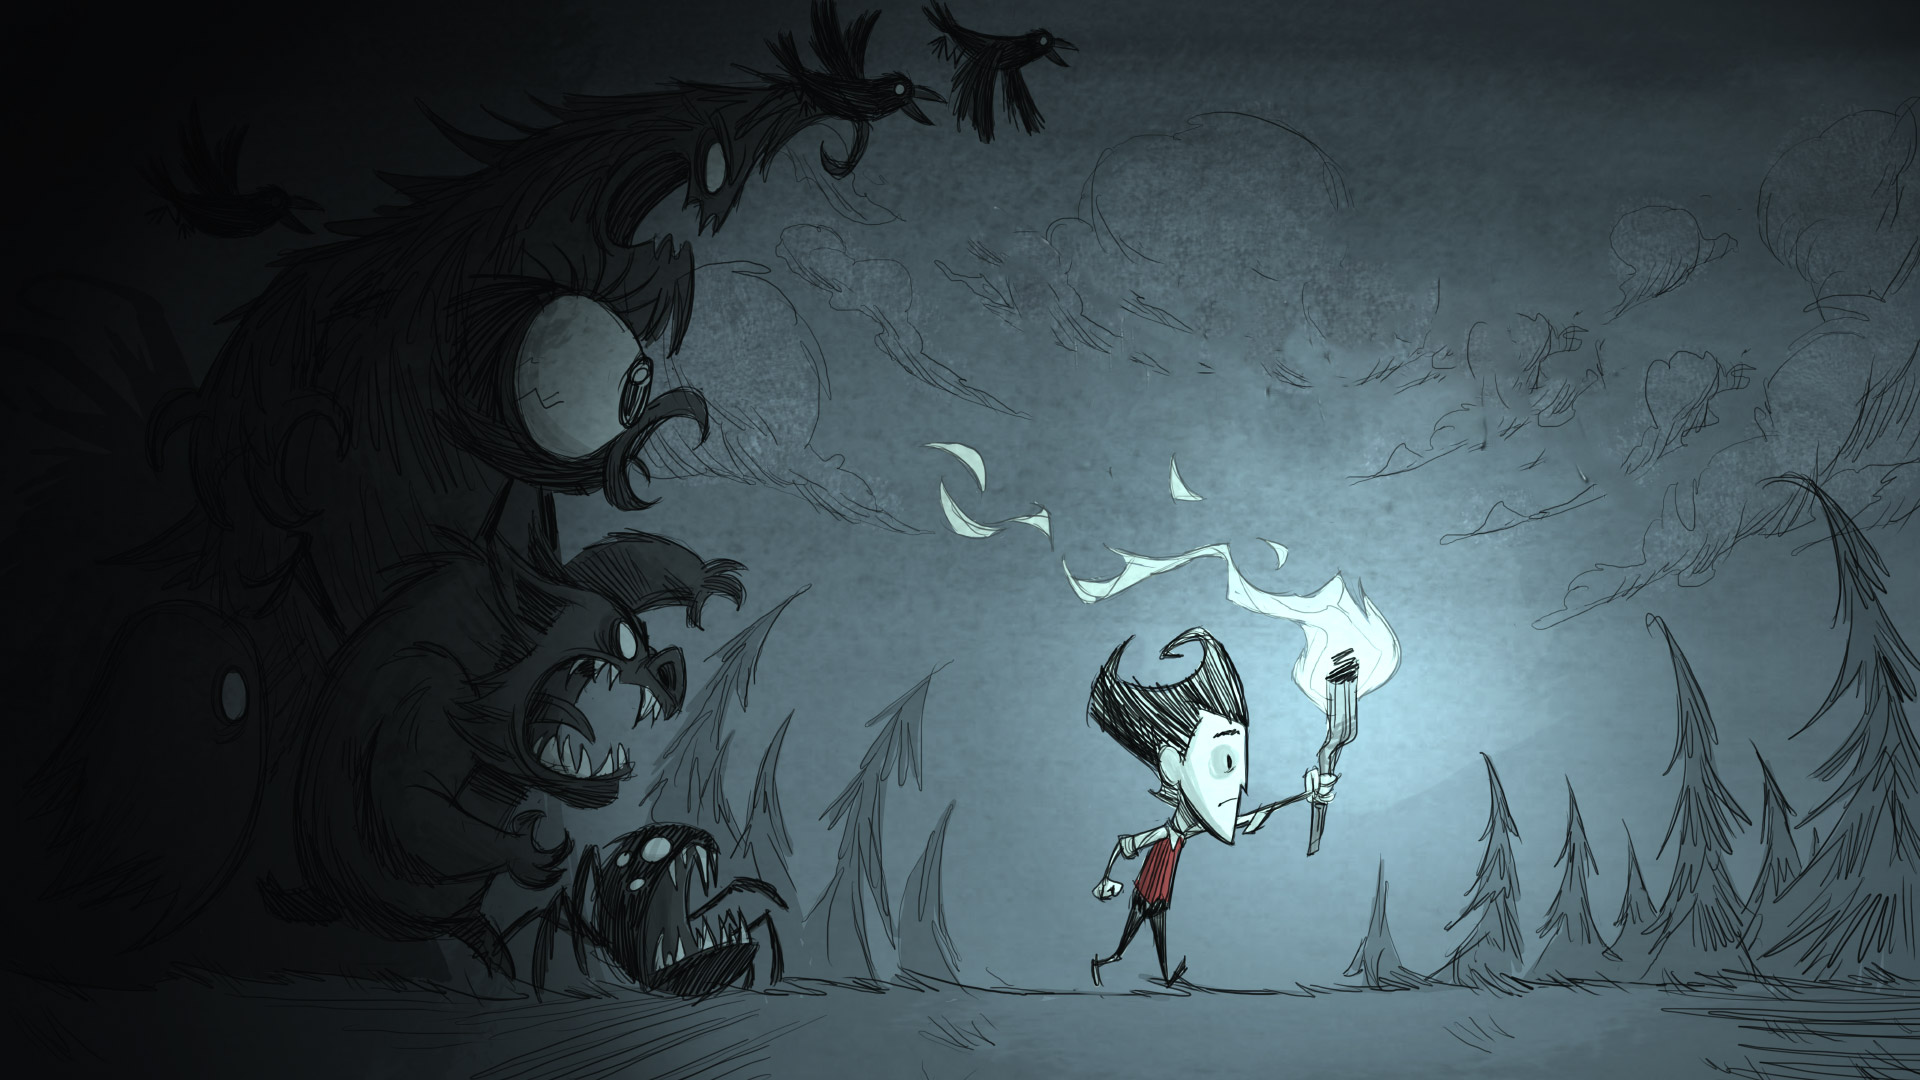 Free Don't Starve Wallpaper in 1920x1080